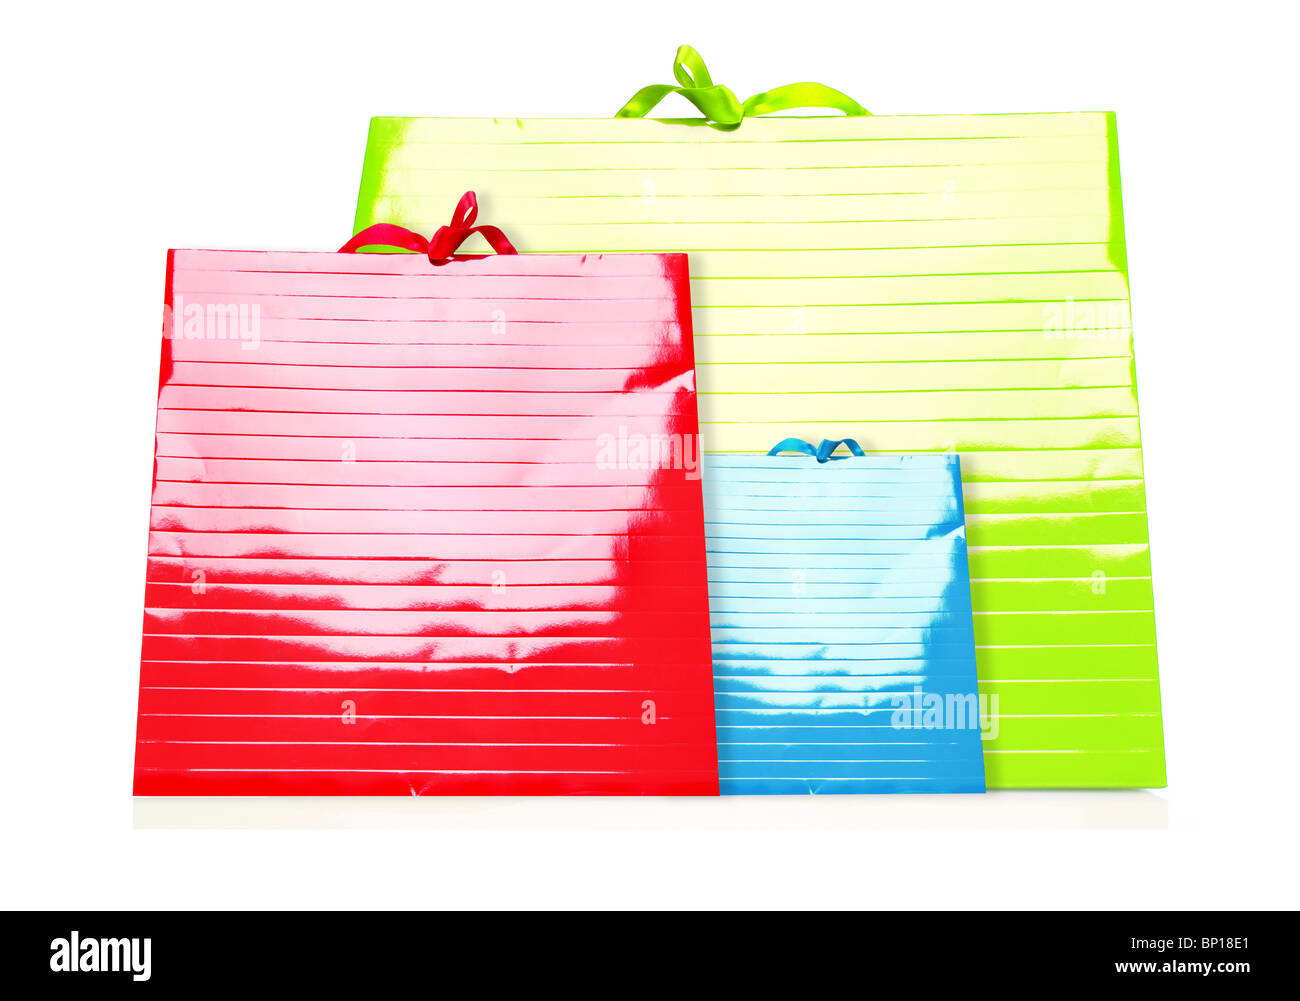 Colorful Shopping Bags isolated on white Photo Stock